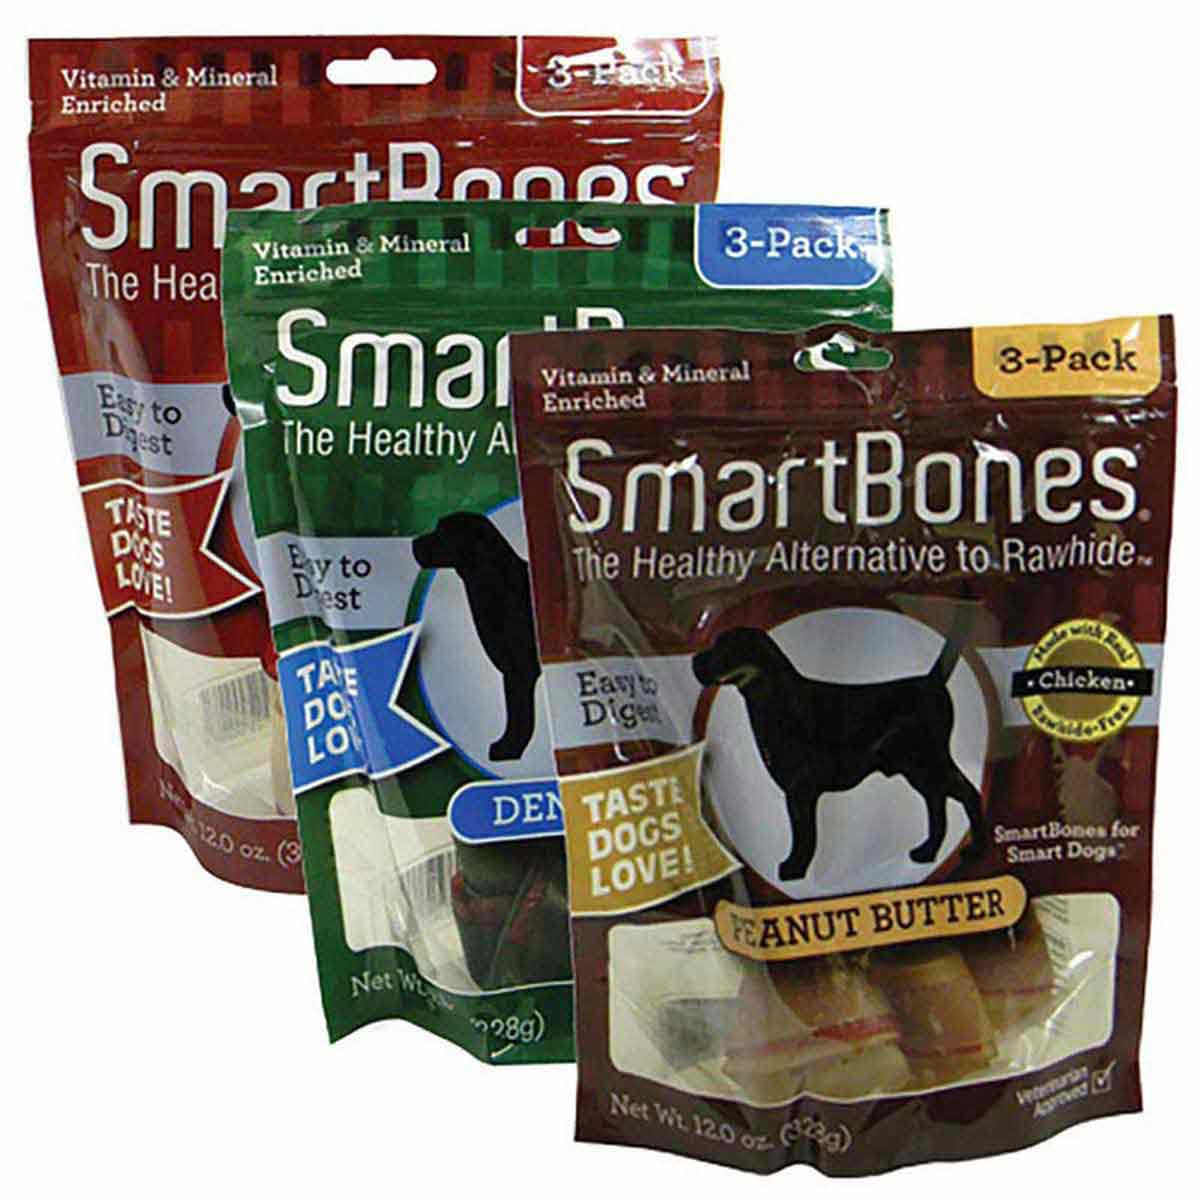 SmartBones Large Treats for Dogs 3 Pack - Choose from Chicken, Dental or Peanut Butter